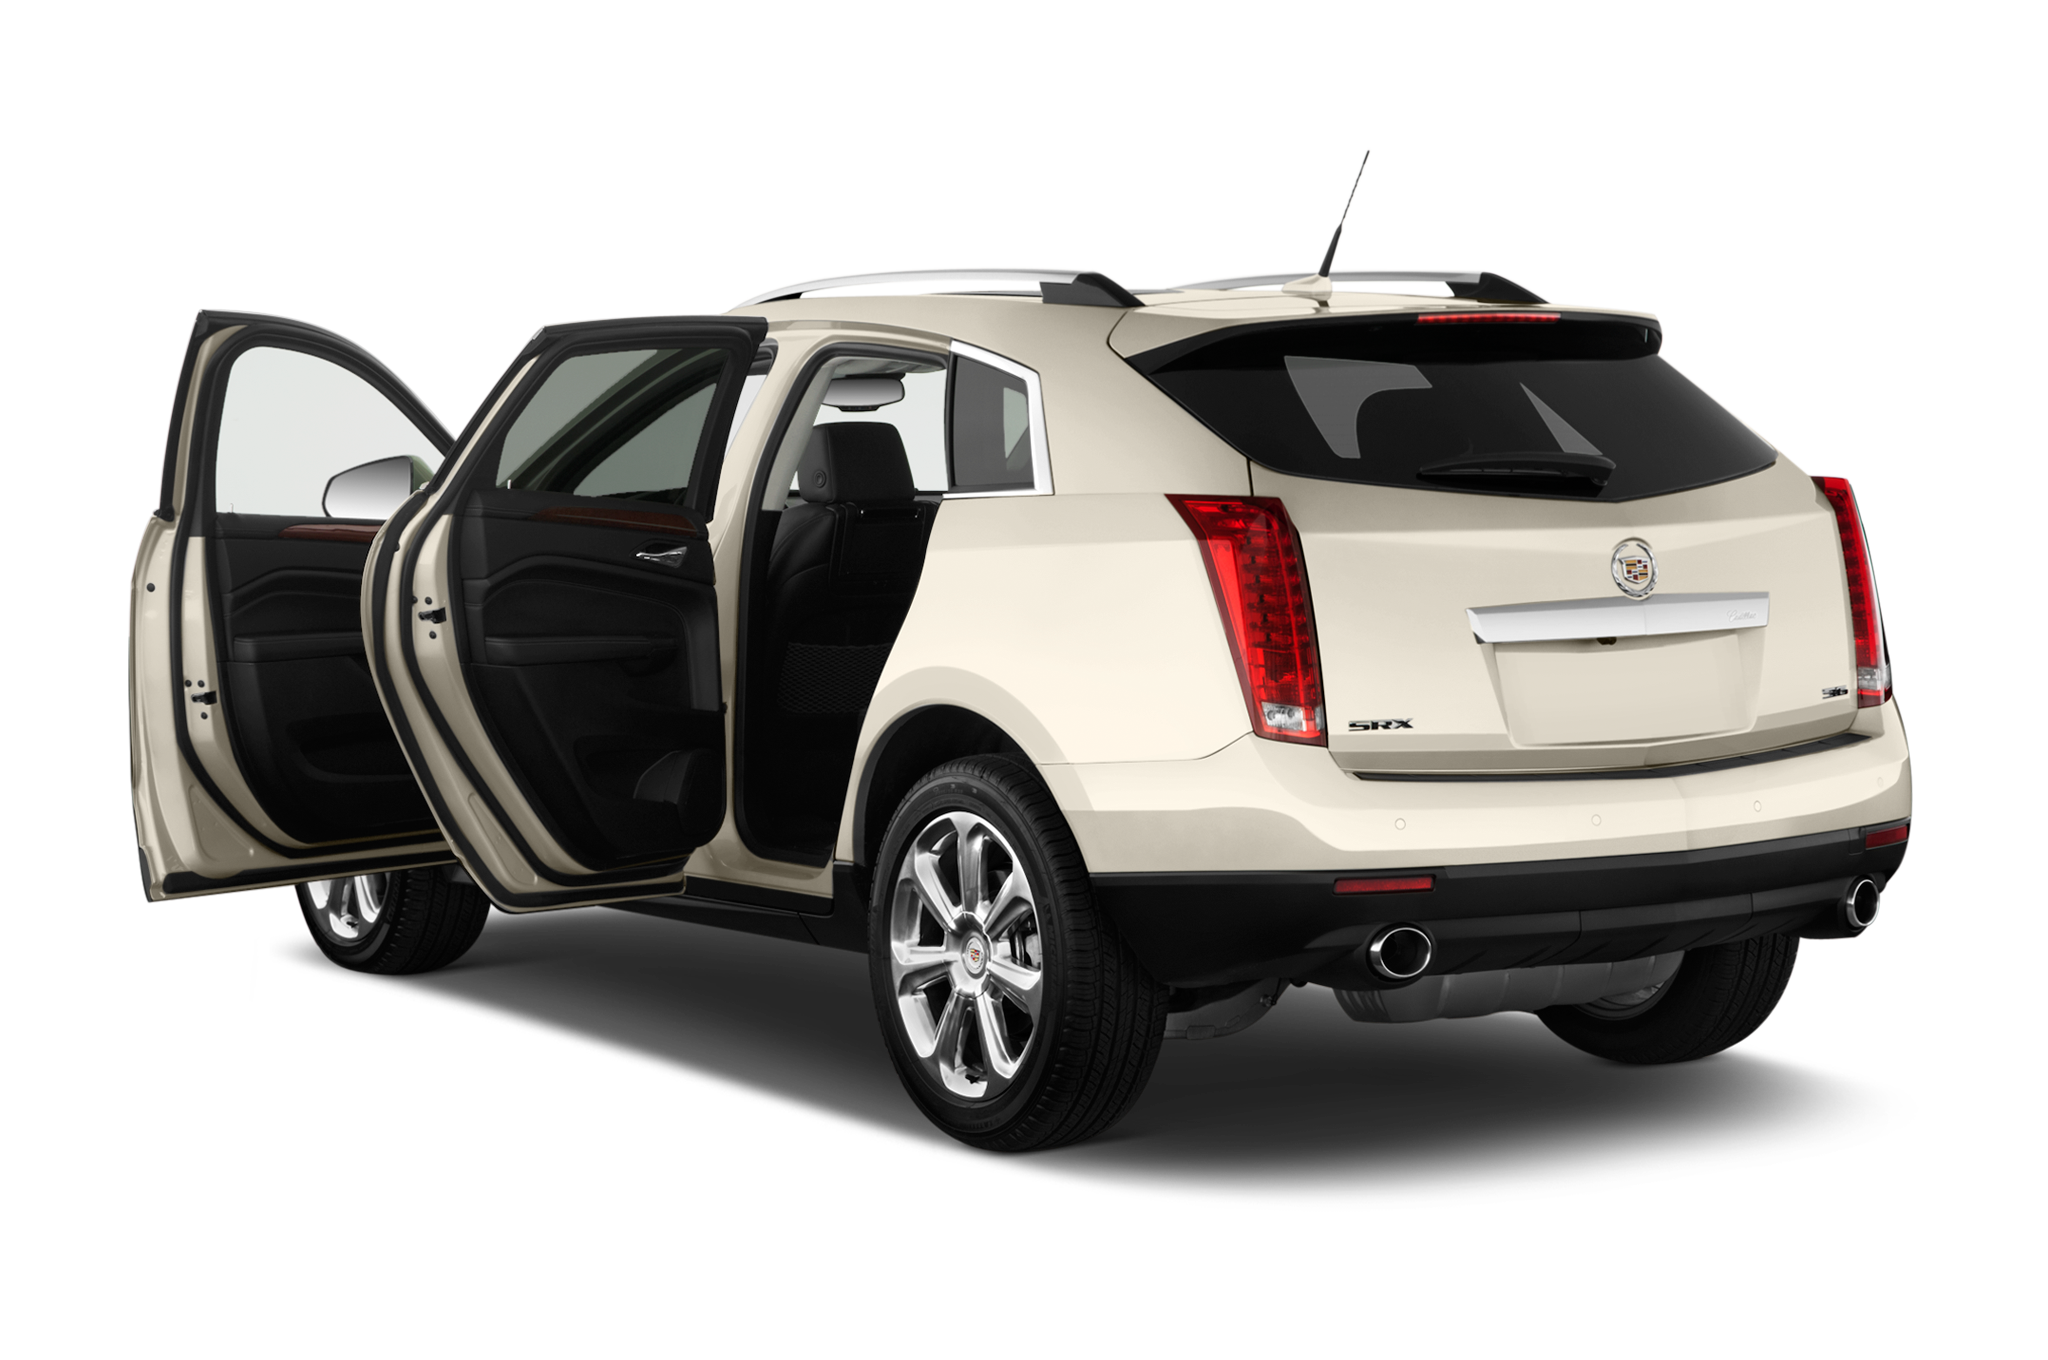 cadillac adds rear seat entertainment system with cue to 2013 srx. Black Bedroom Furniture Sets. Home Design Ideas